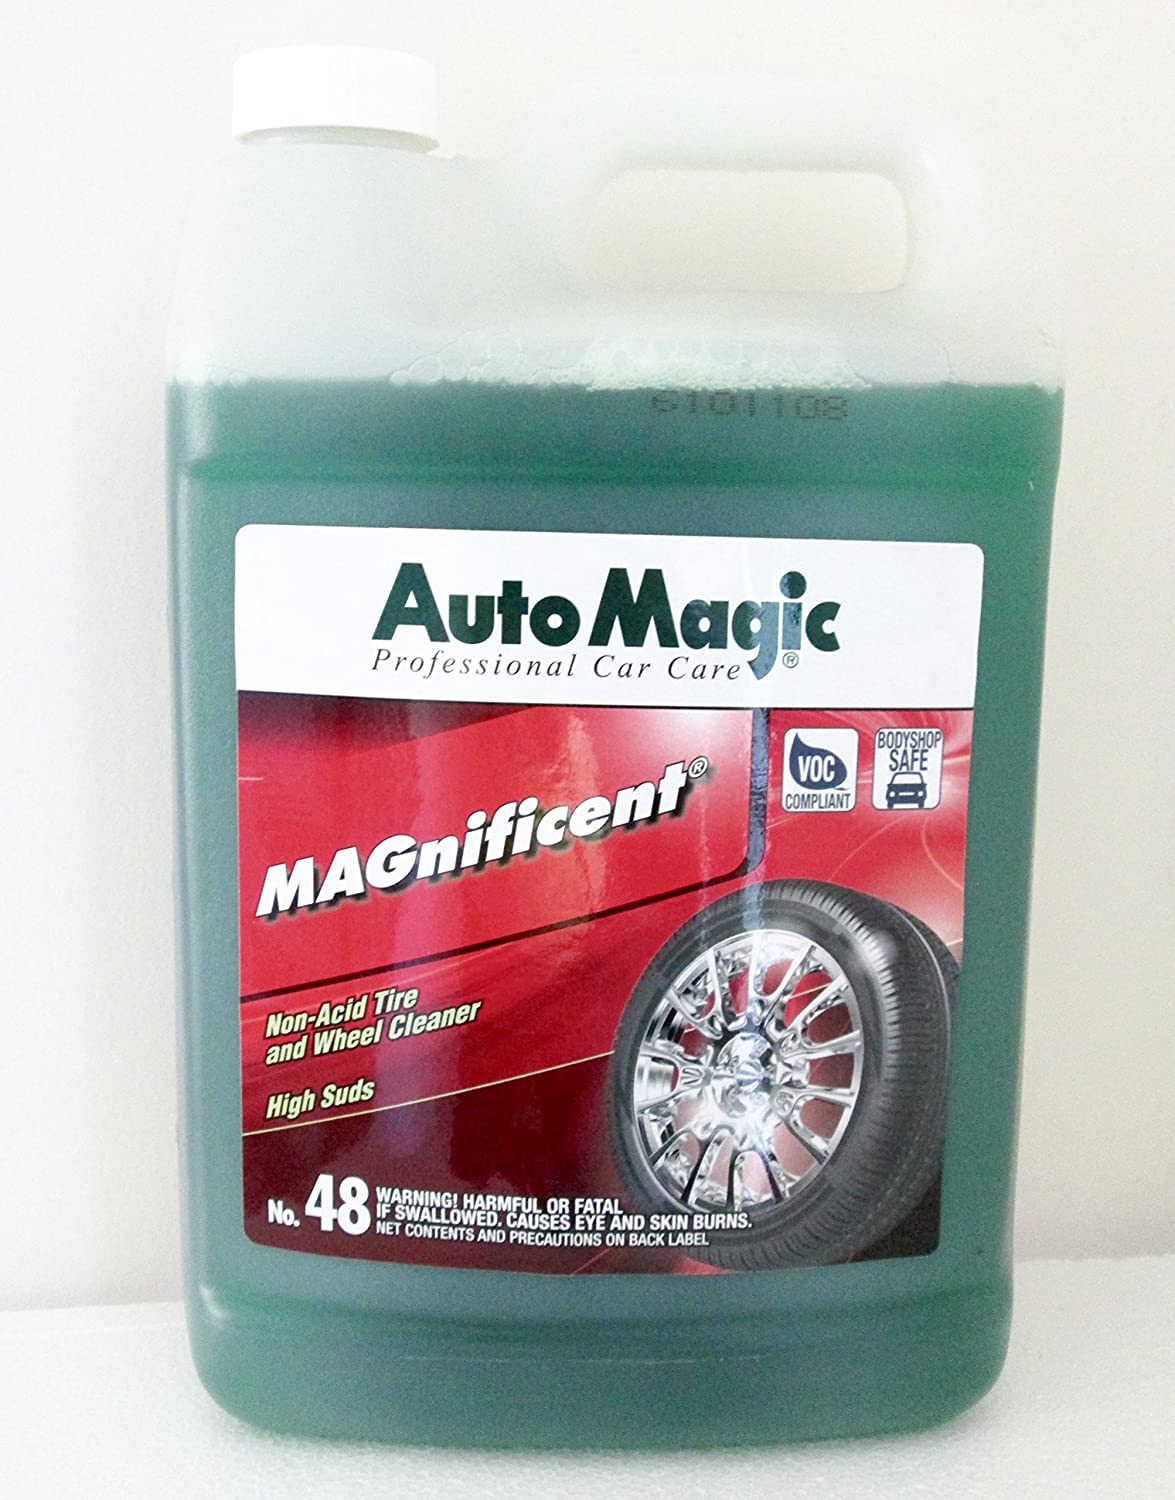 Auto Magic MAGnificent, concentrated wheel cleaner, 1 GAL